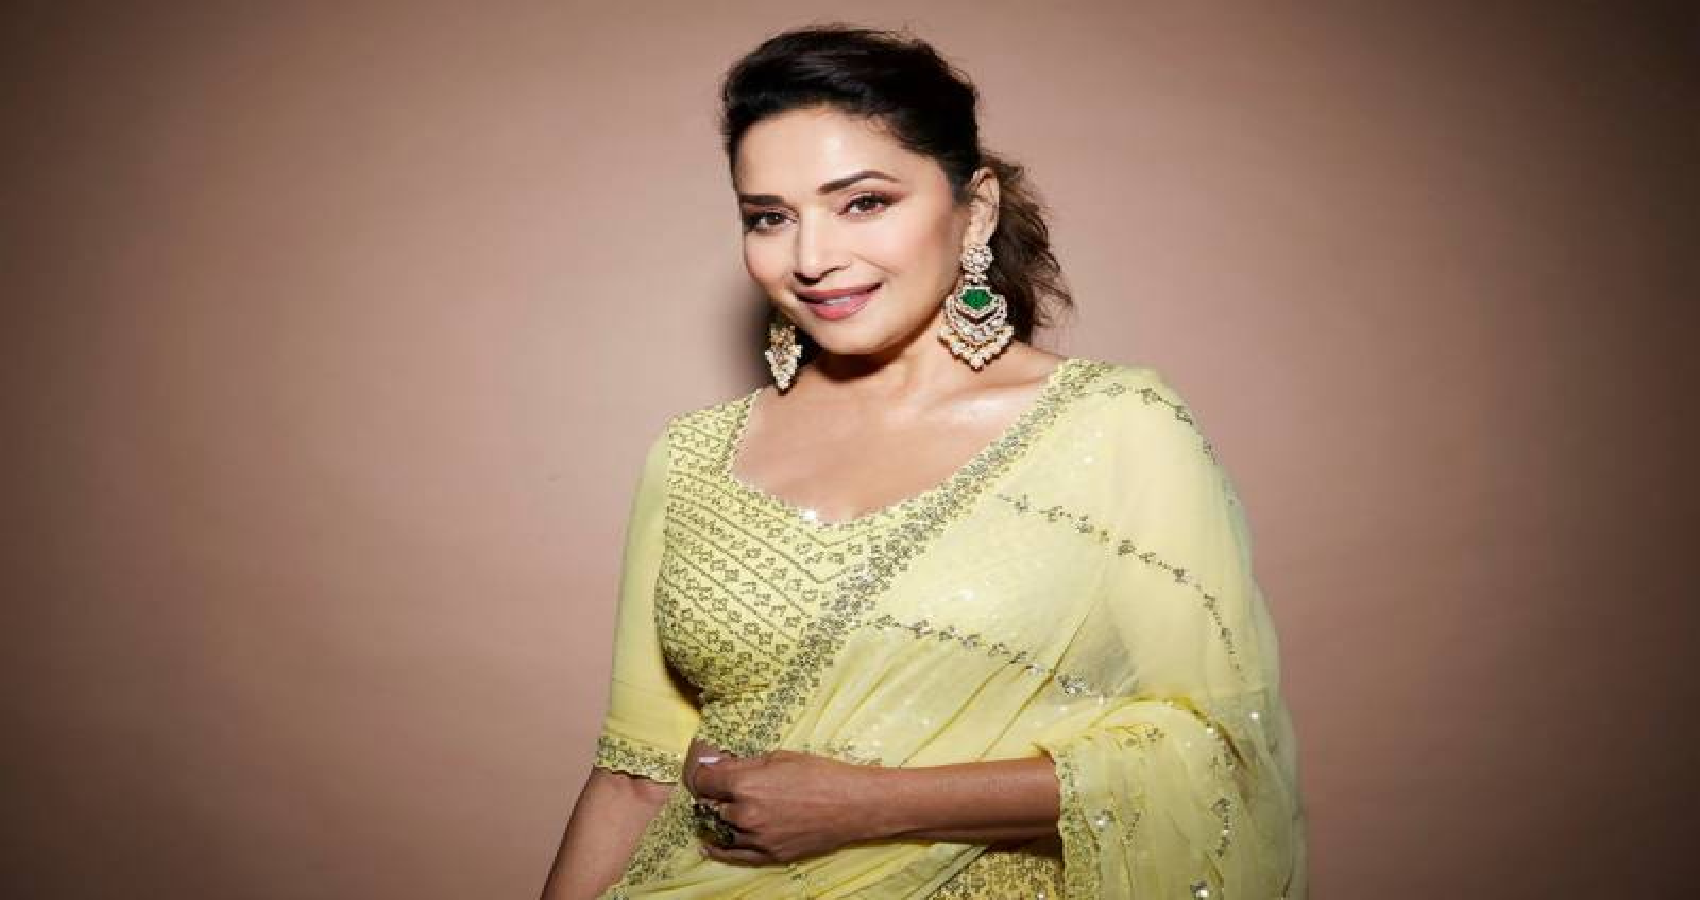 On Madhuri Dixit's 54th Birthday Bollywood Lauds Her Contributions To Cinema